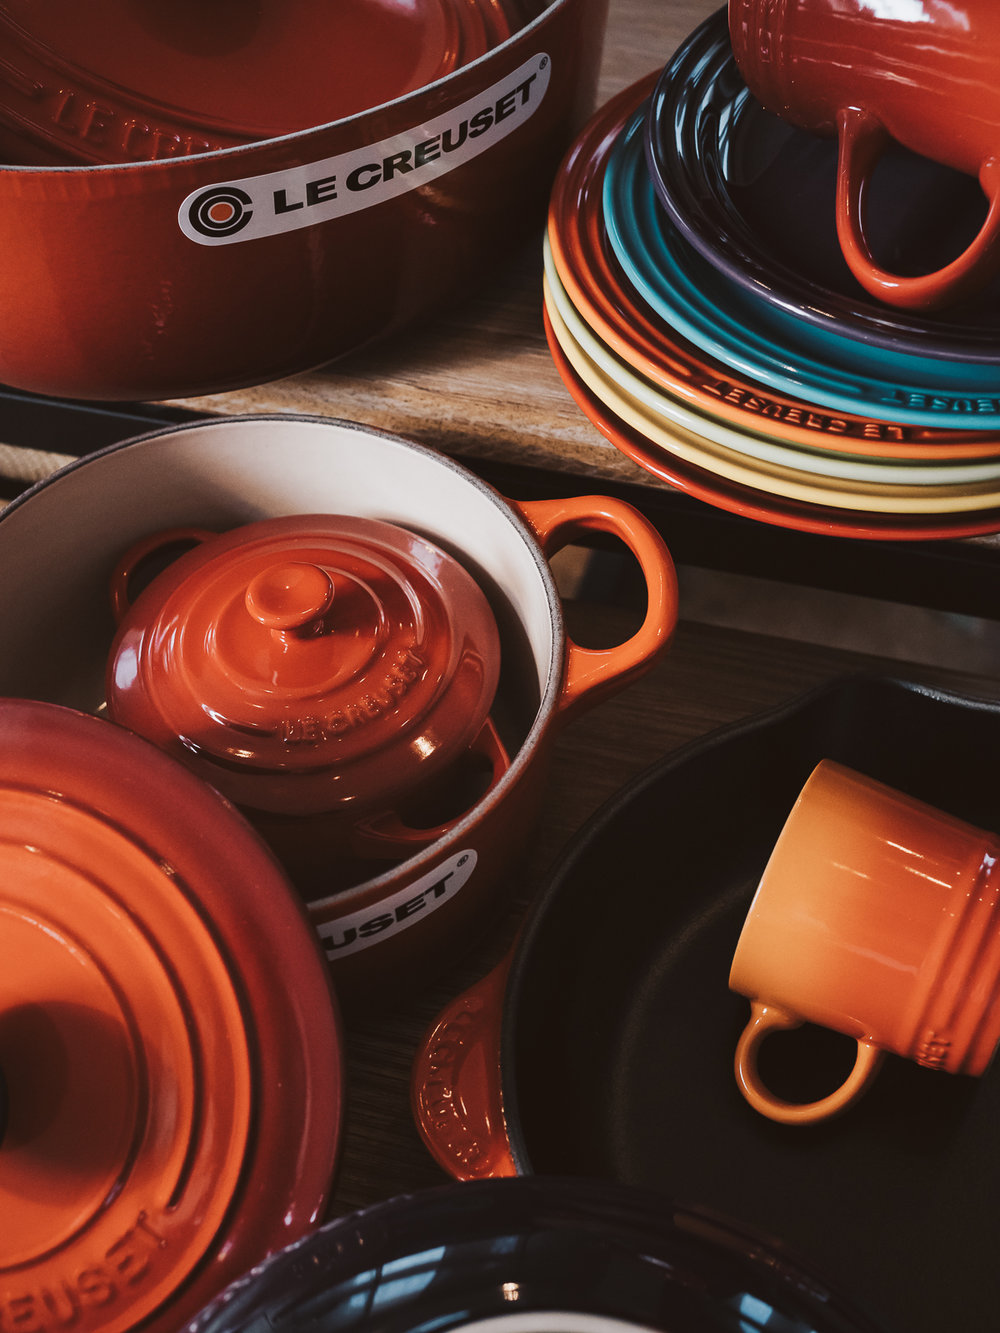 Le Creuset - Colorful kitchen and happy cooking mood.